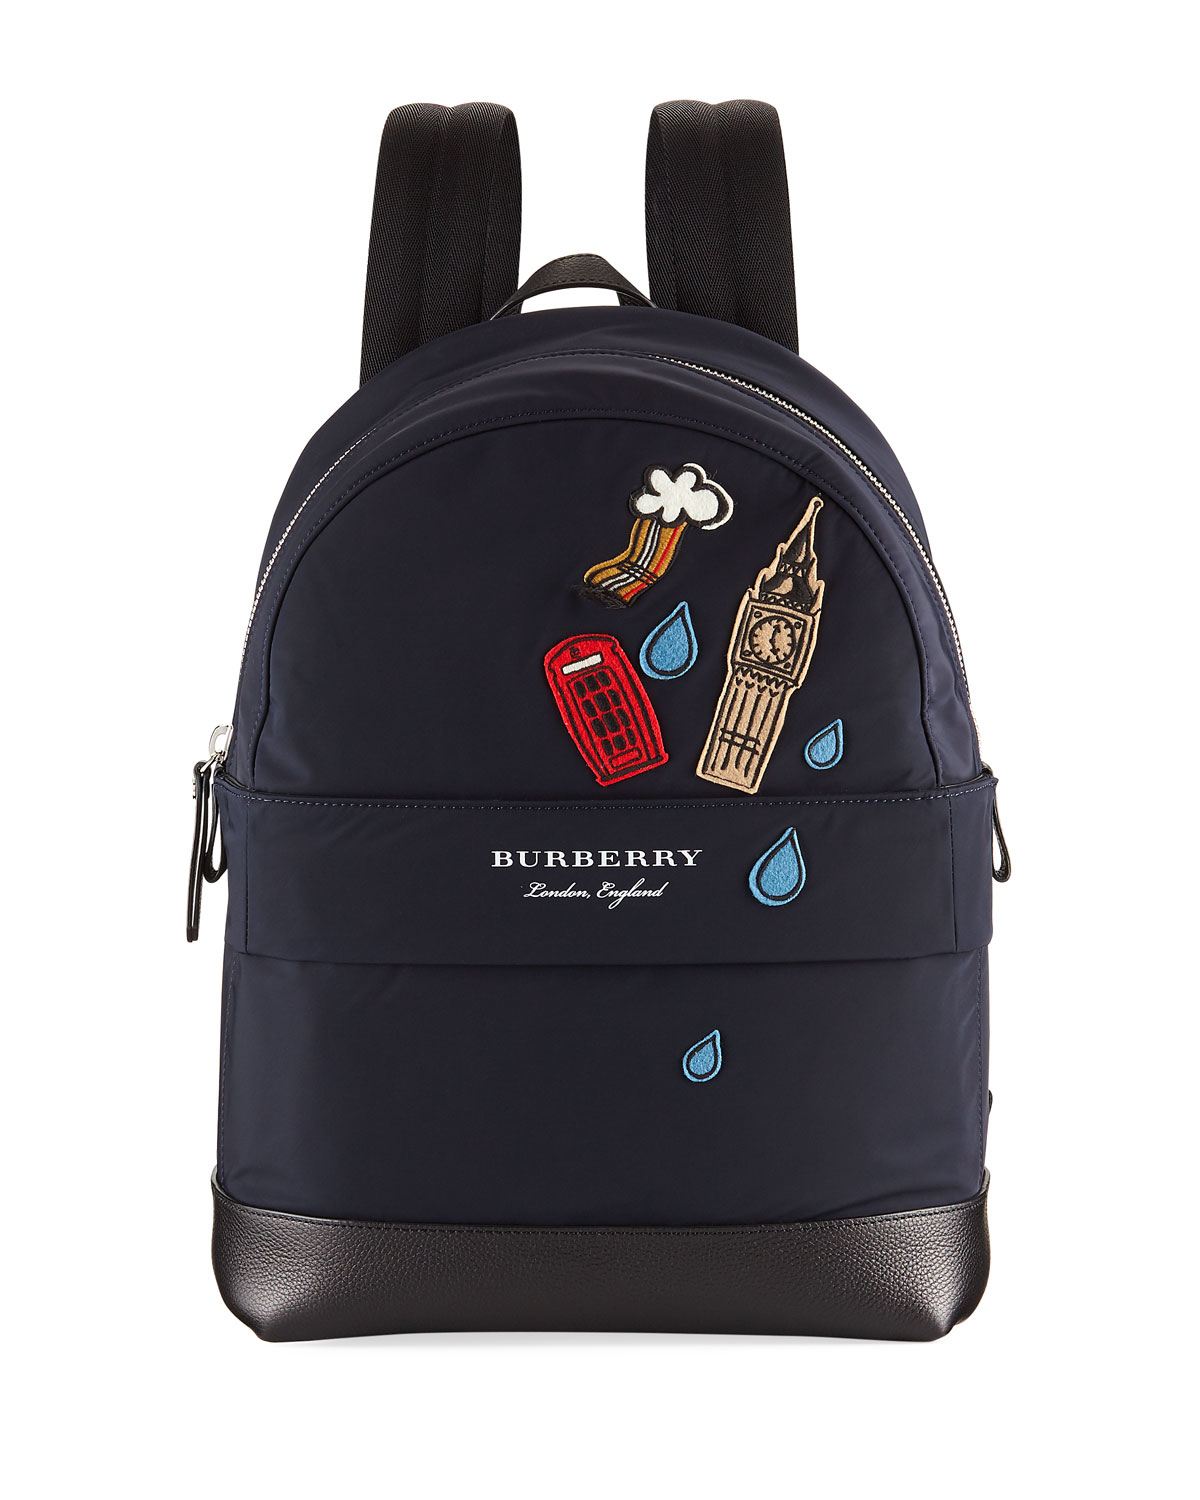 a77bcce6d8c2 Burberry Nico London Patches Backpack